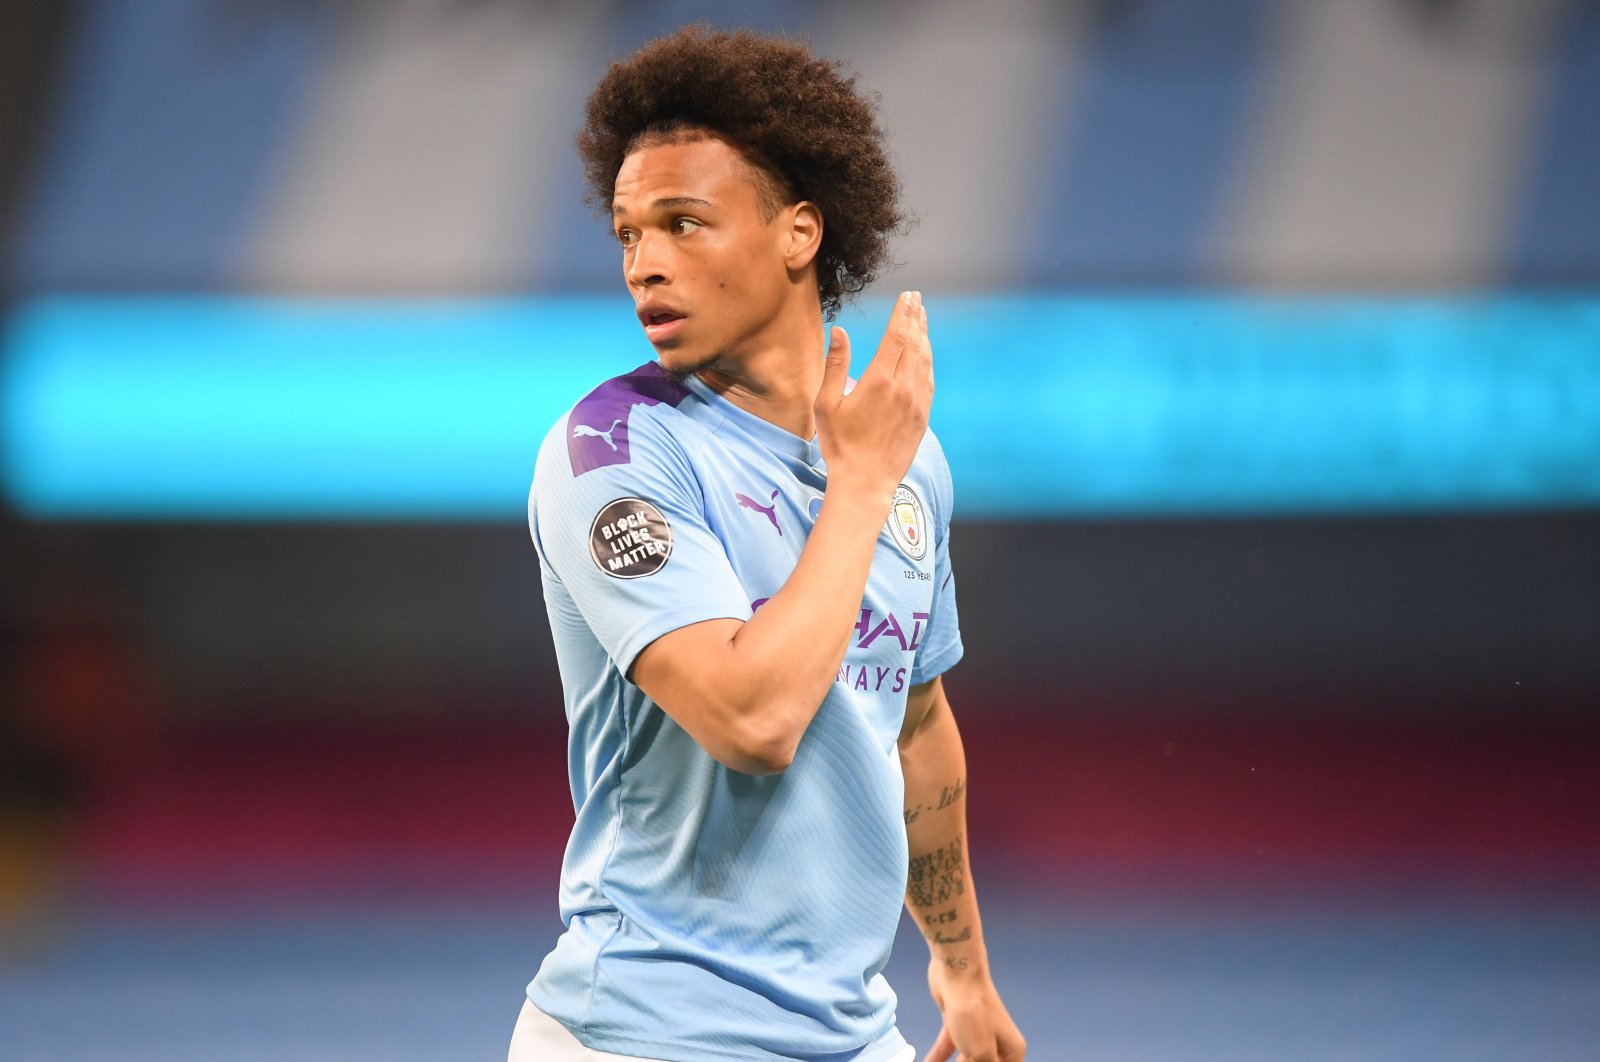 Leroy Sane of Manchester City comes on from the bench during the English Premier League football match between Manchester City and Burnley at the Etihad Stadium in Manchester, England, June 22, 2020. (EPA Photo)